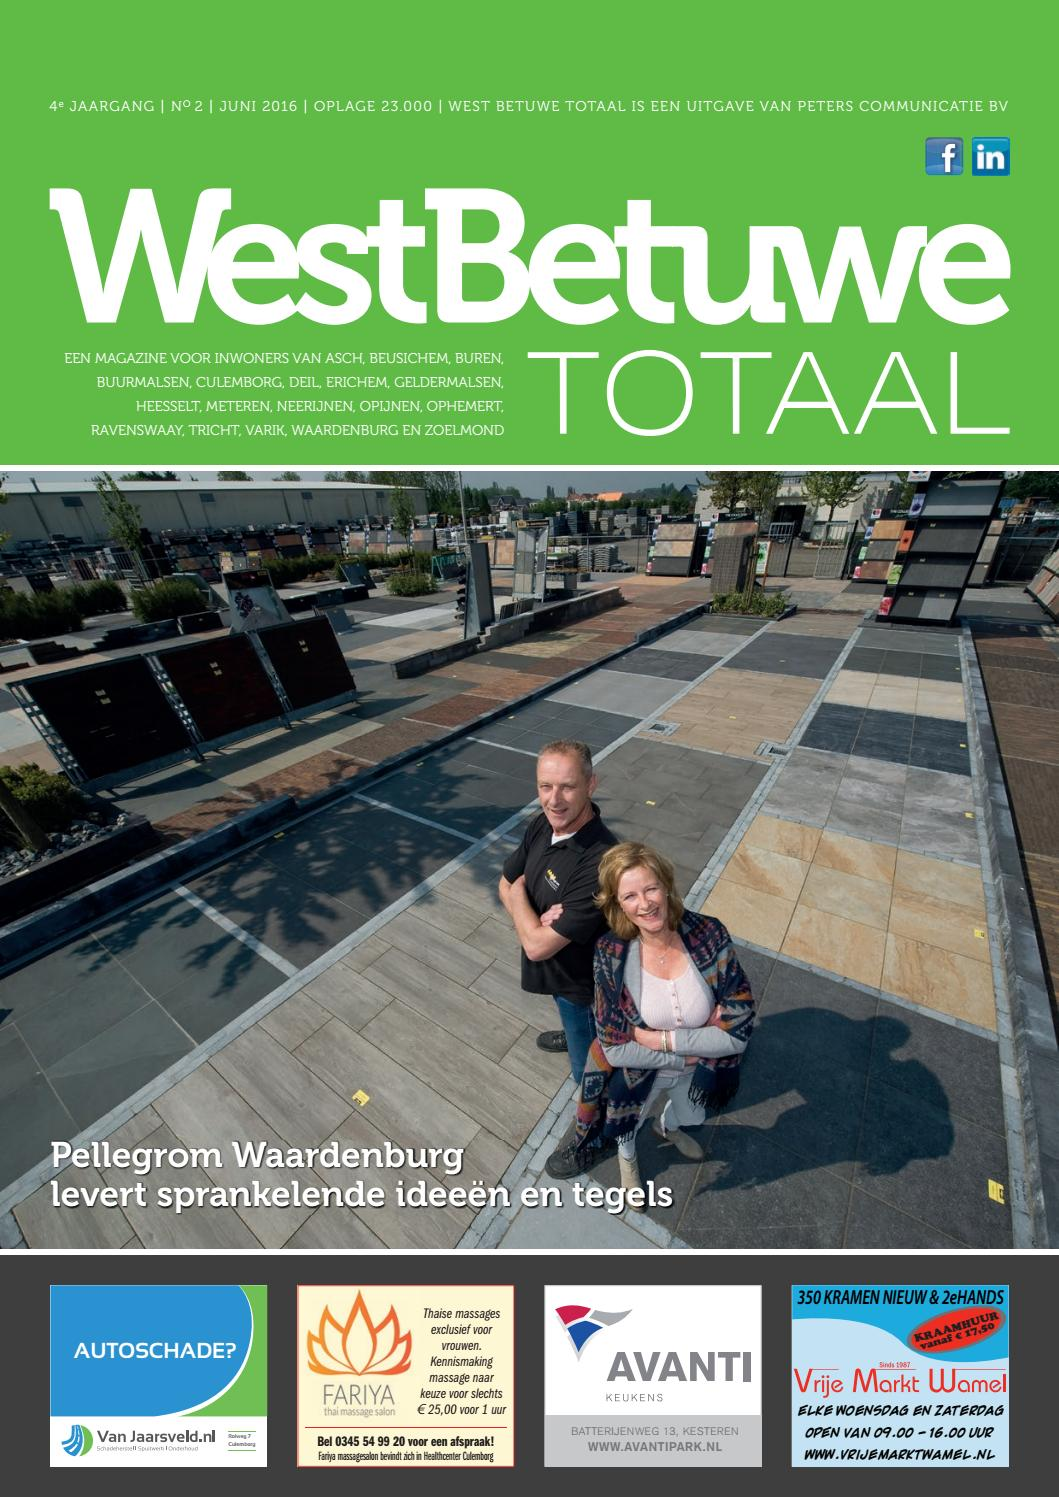 West betuwe totaal juni 2016 online by peters communicatie   issuu